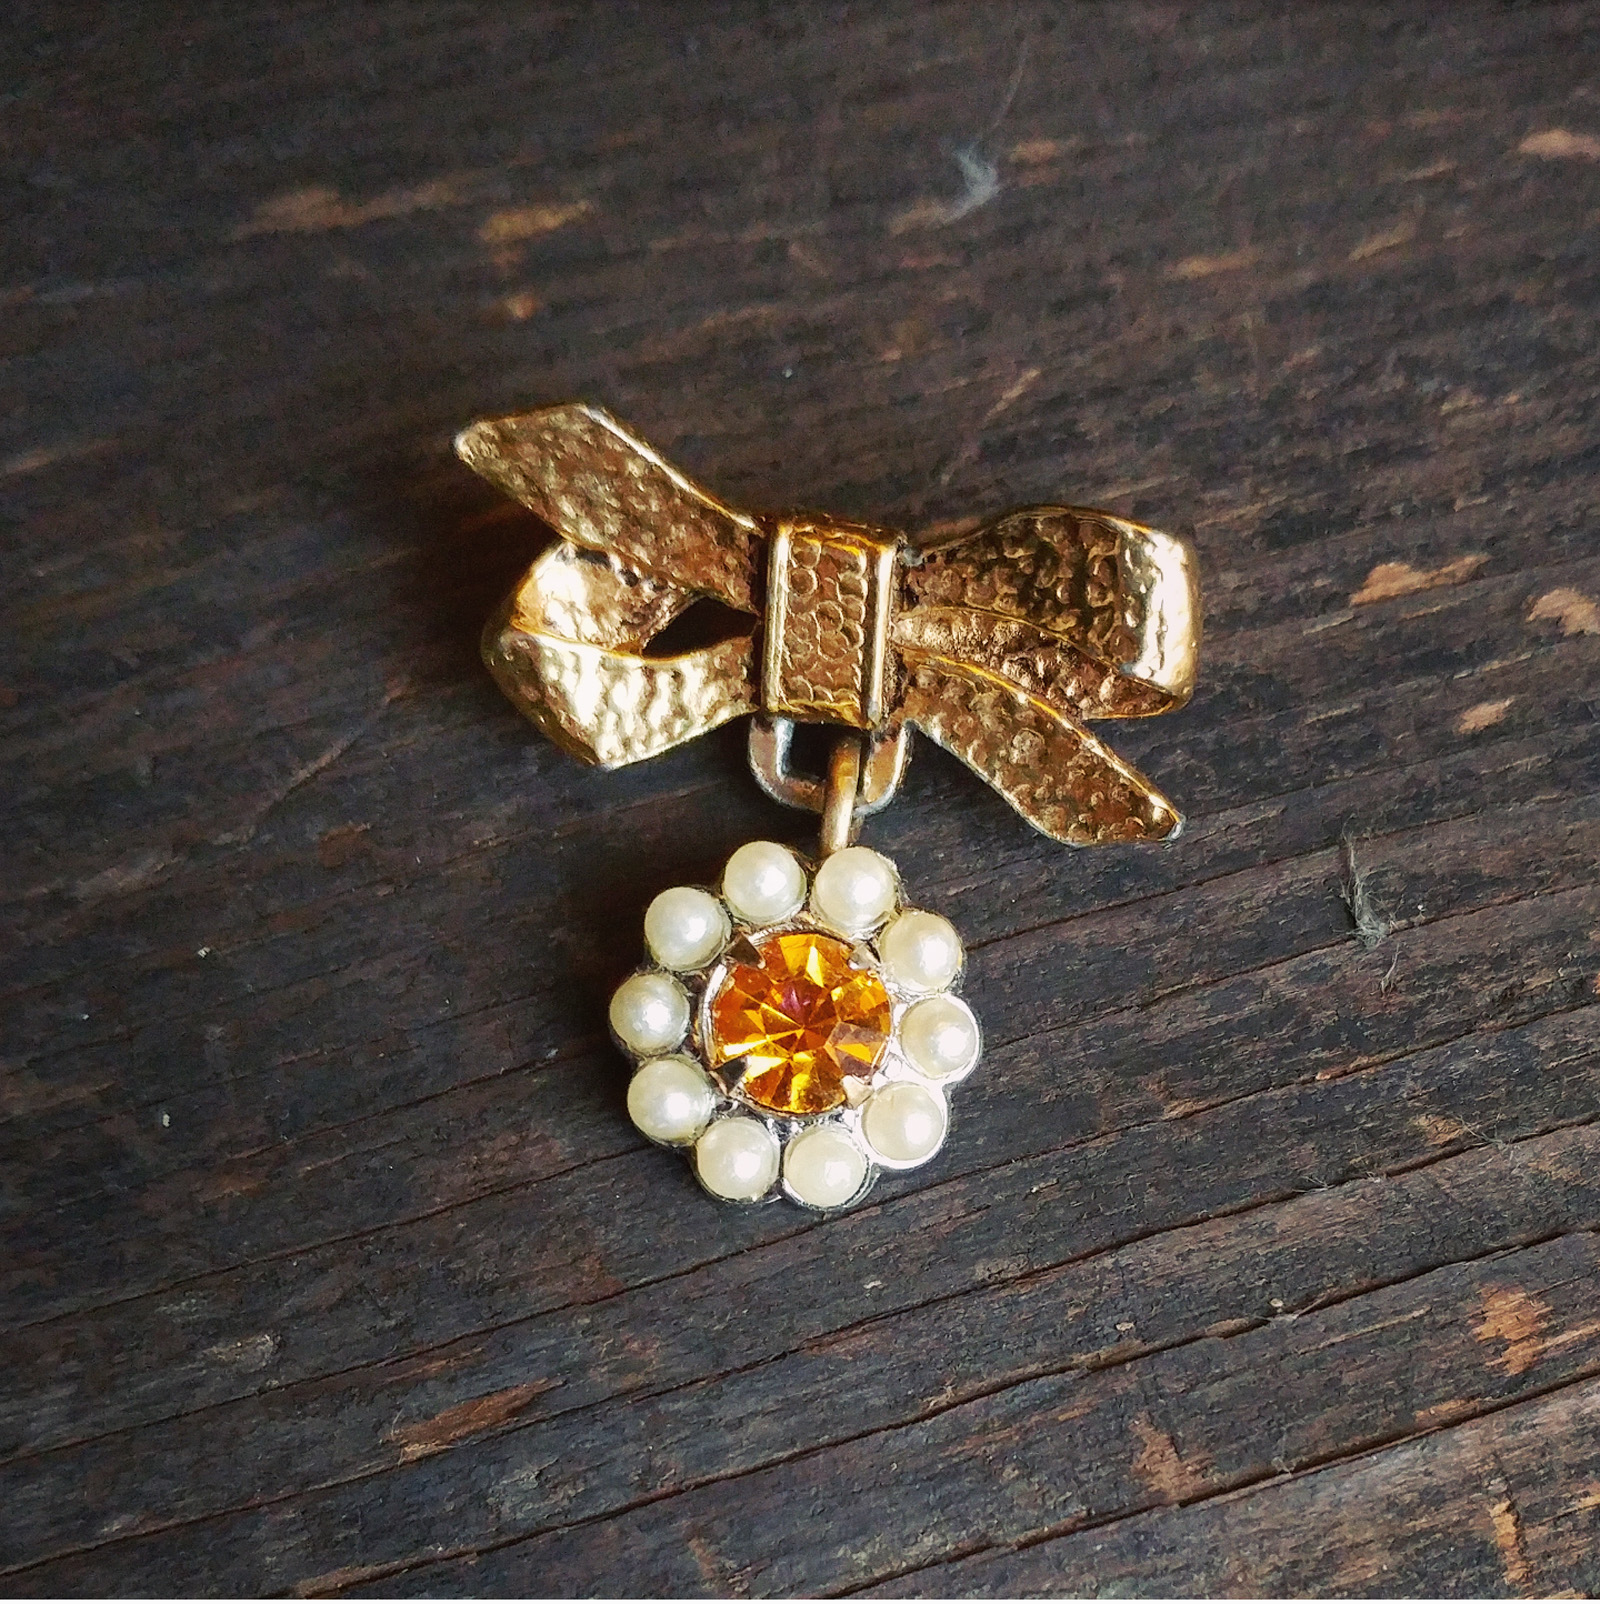 Vintage components re-designed into one adorable brooch